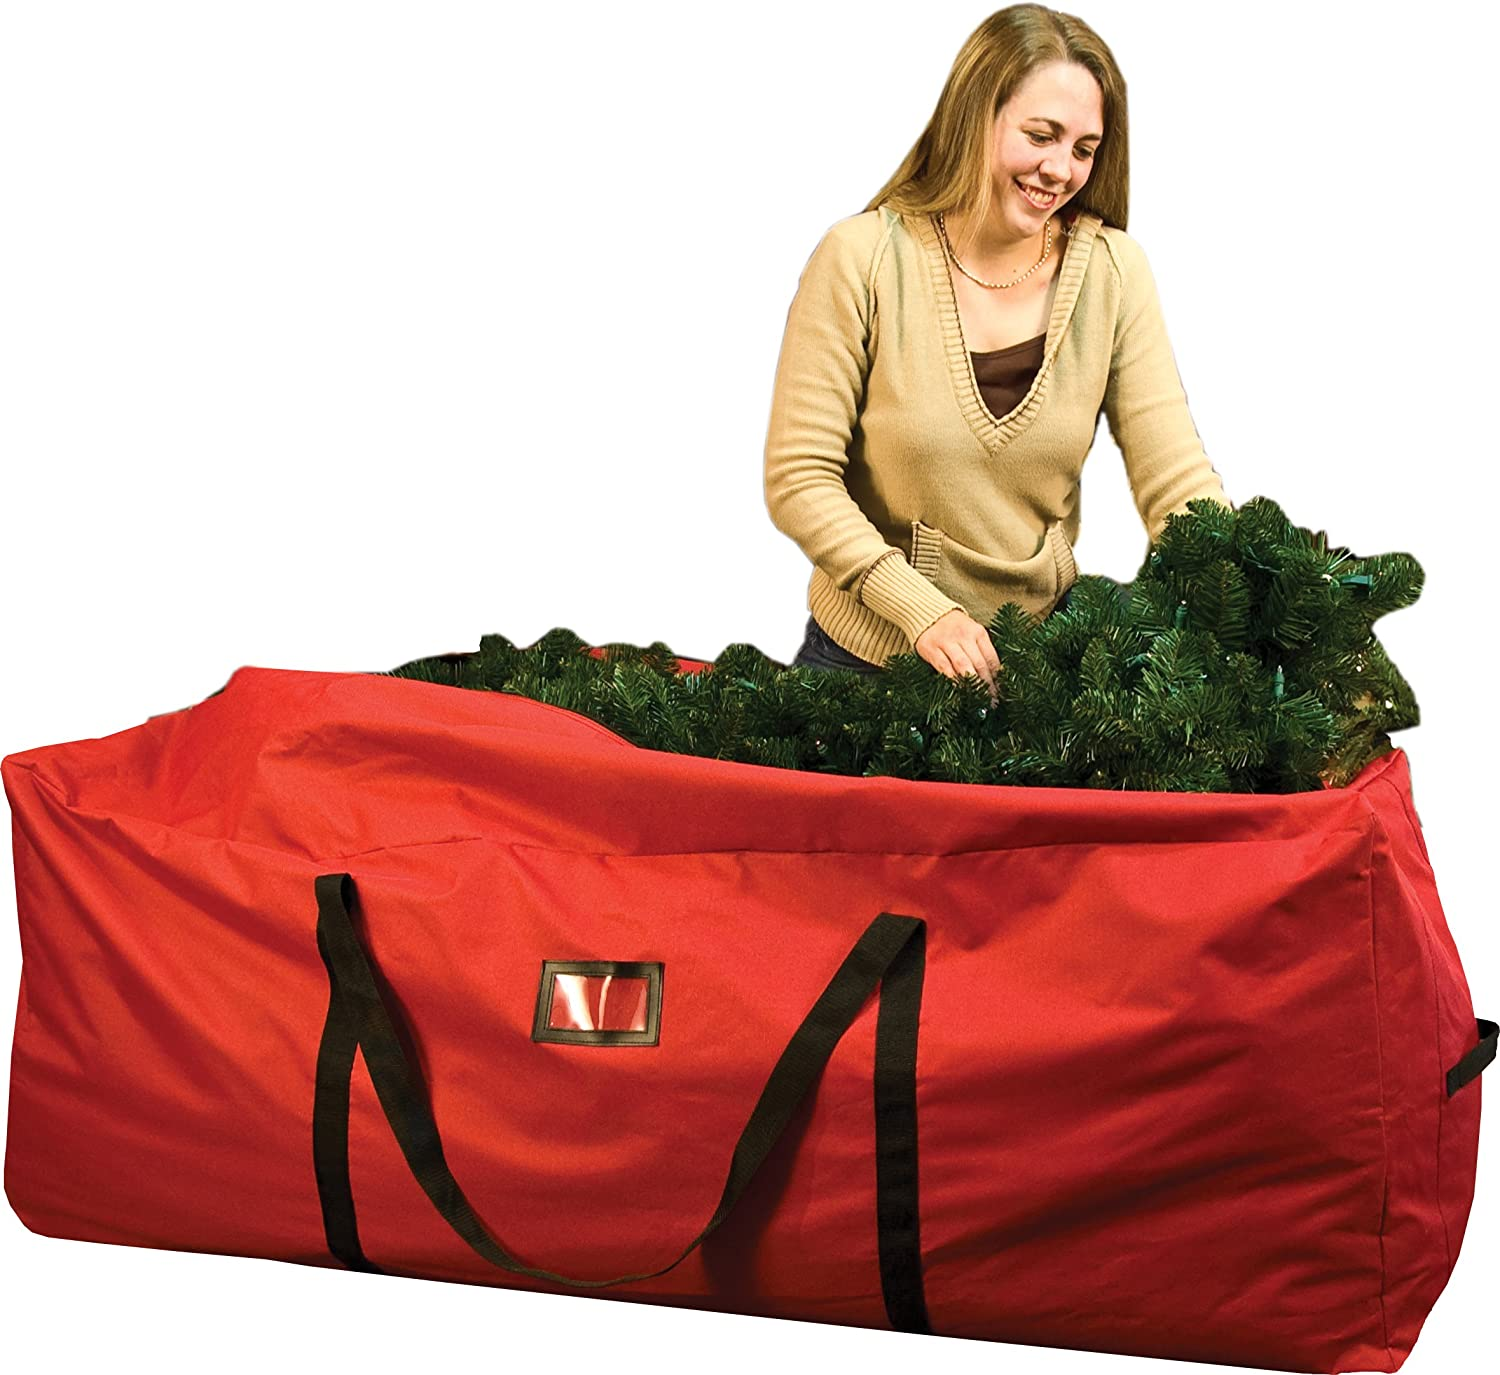 Santas Bags Rolling Tree Storage Duffel, for 6 to 9-Foot Trees SB-10114